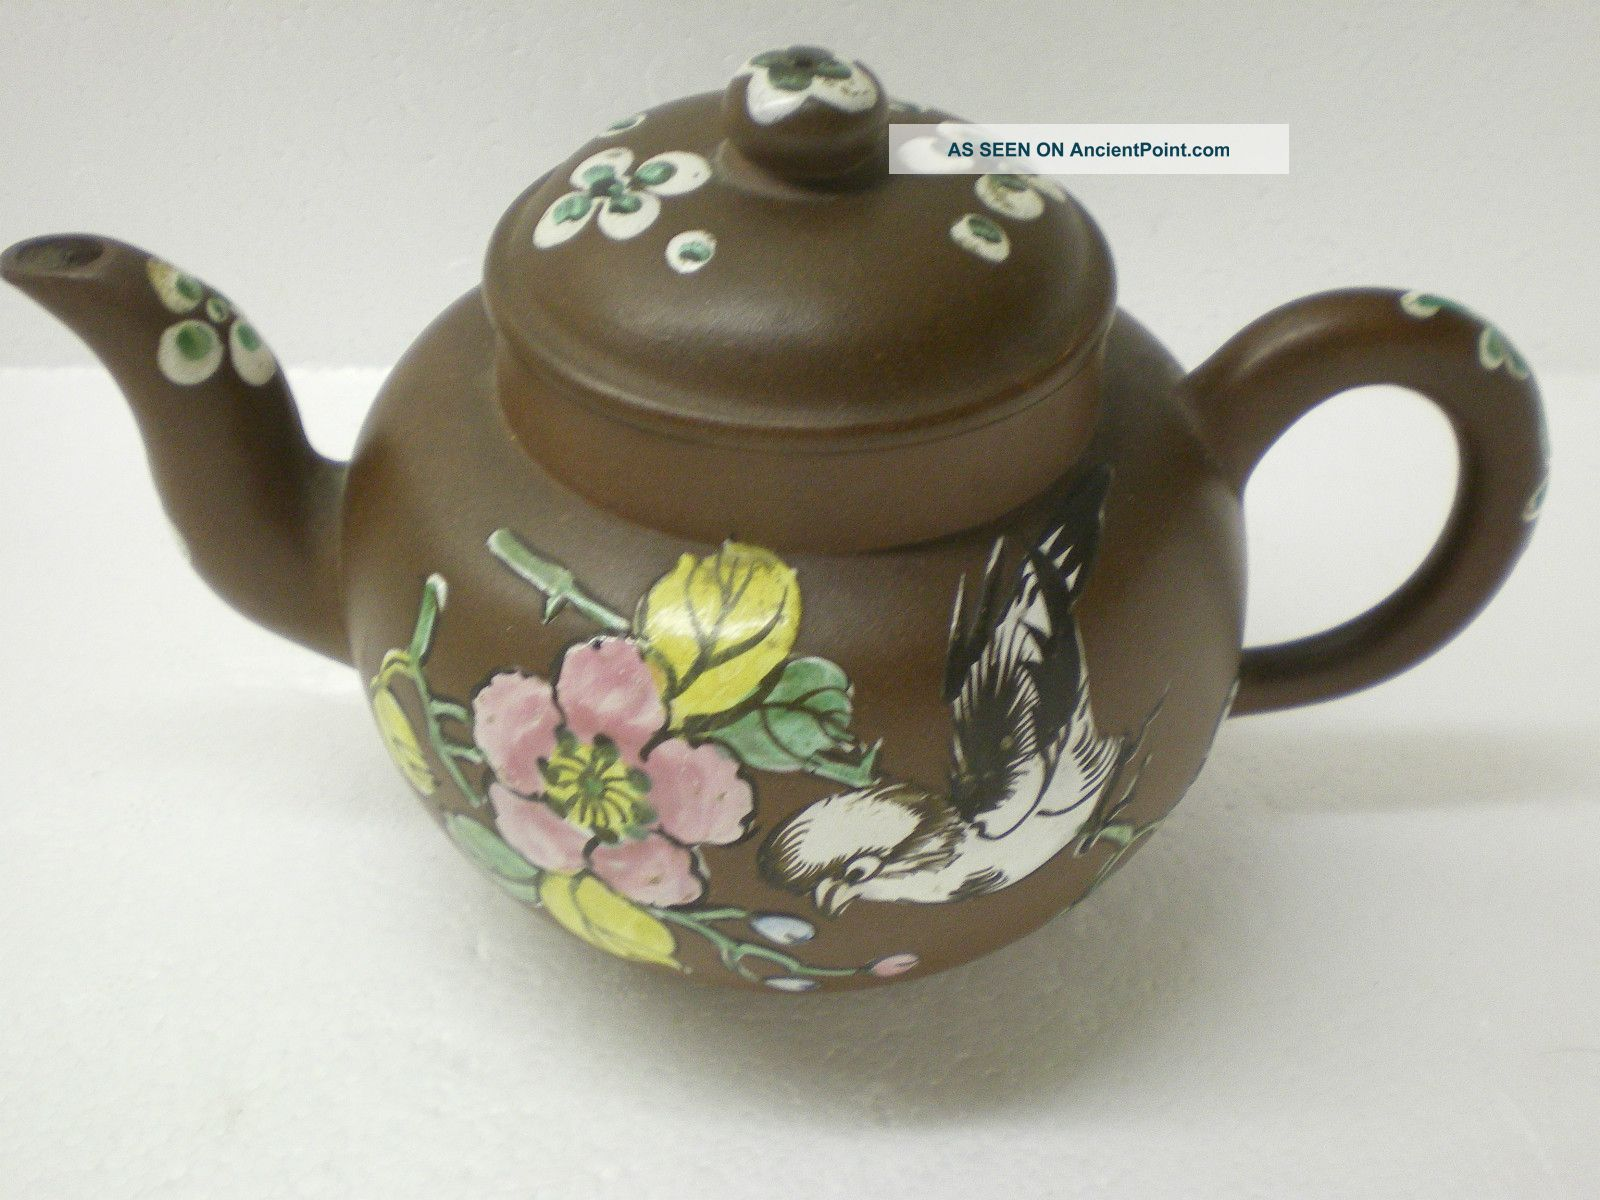 Antique Chinese Yixing Clay Teapot With Enamel Decoration Teapots photo